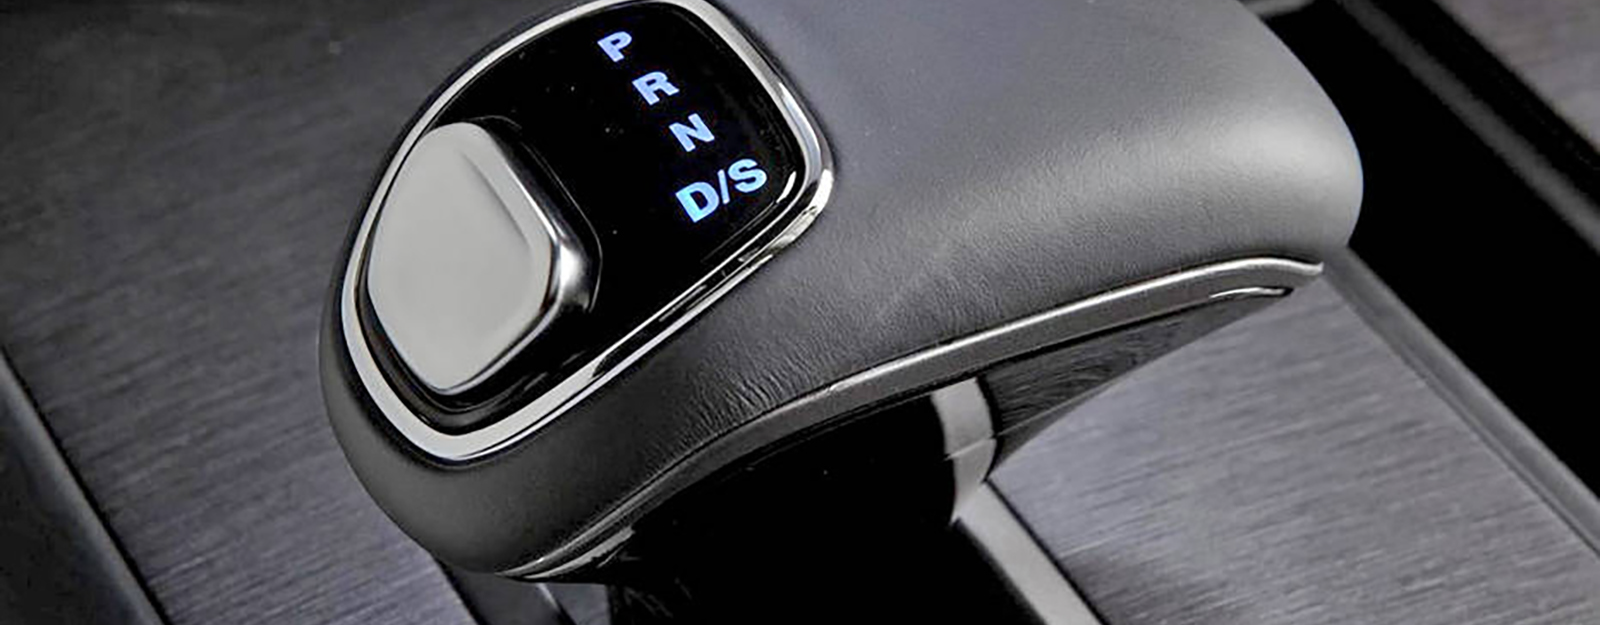 When Bad UI Design Kills: Is Poor Shift Lever Design to